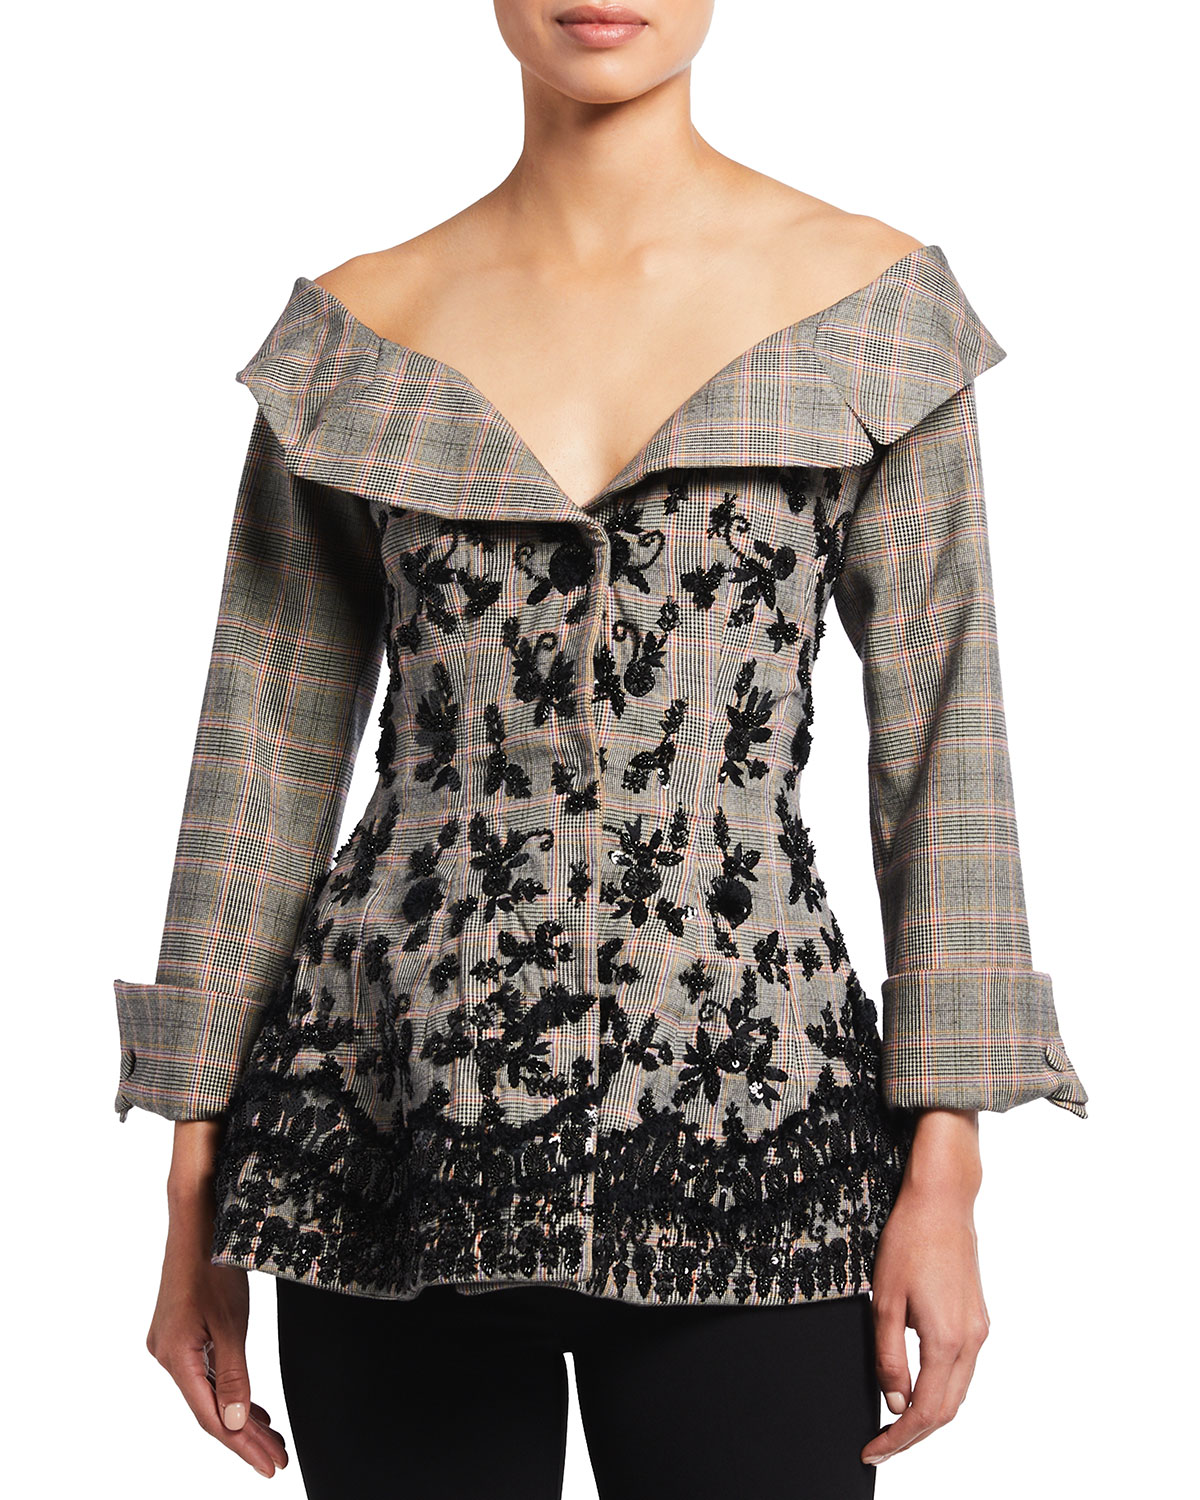 Brock Collection PLAID OFF-THE-SHOULDER EMBROIDERED PEPLUM JACKET